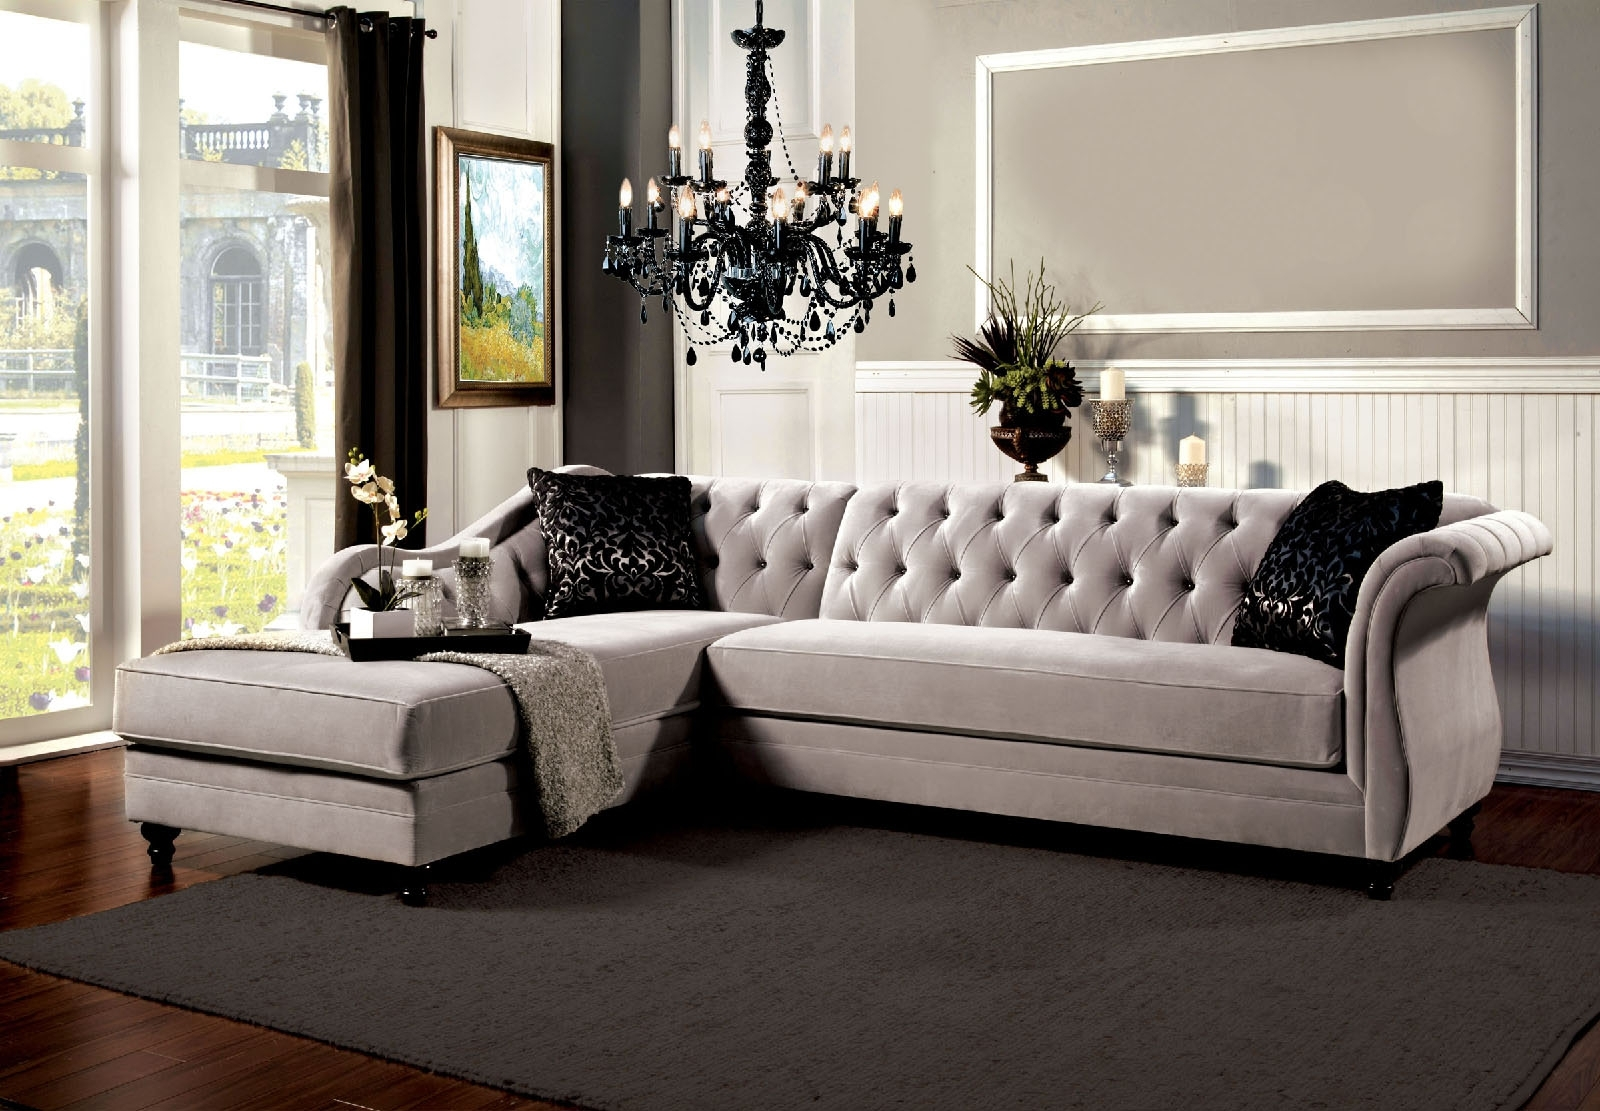 Grey Vintage Tufted Sectional Sofa For Best And Newest Vintage Sectional Sofas (View 7 of 15)